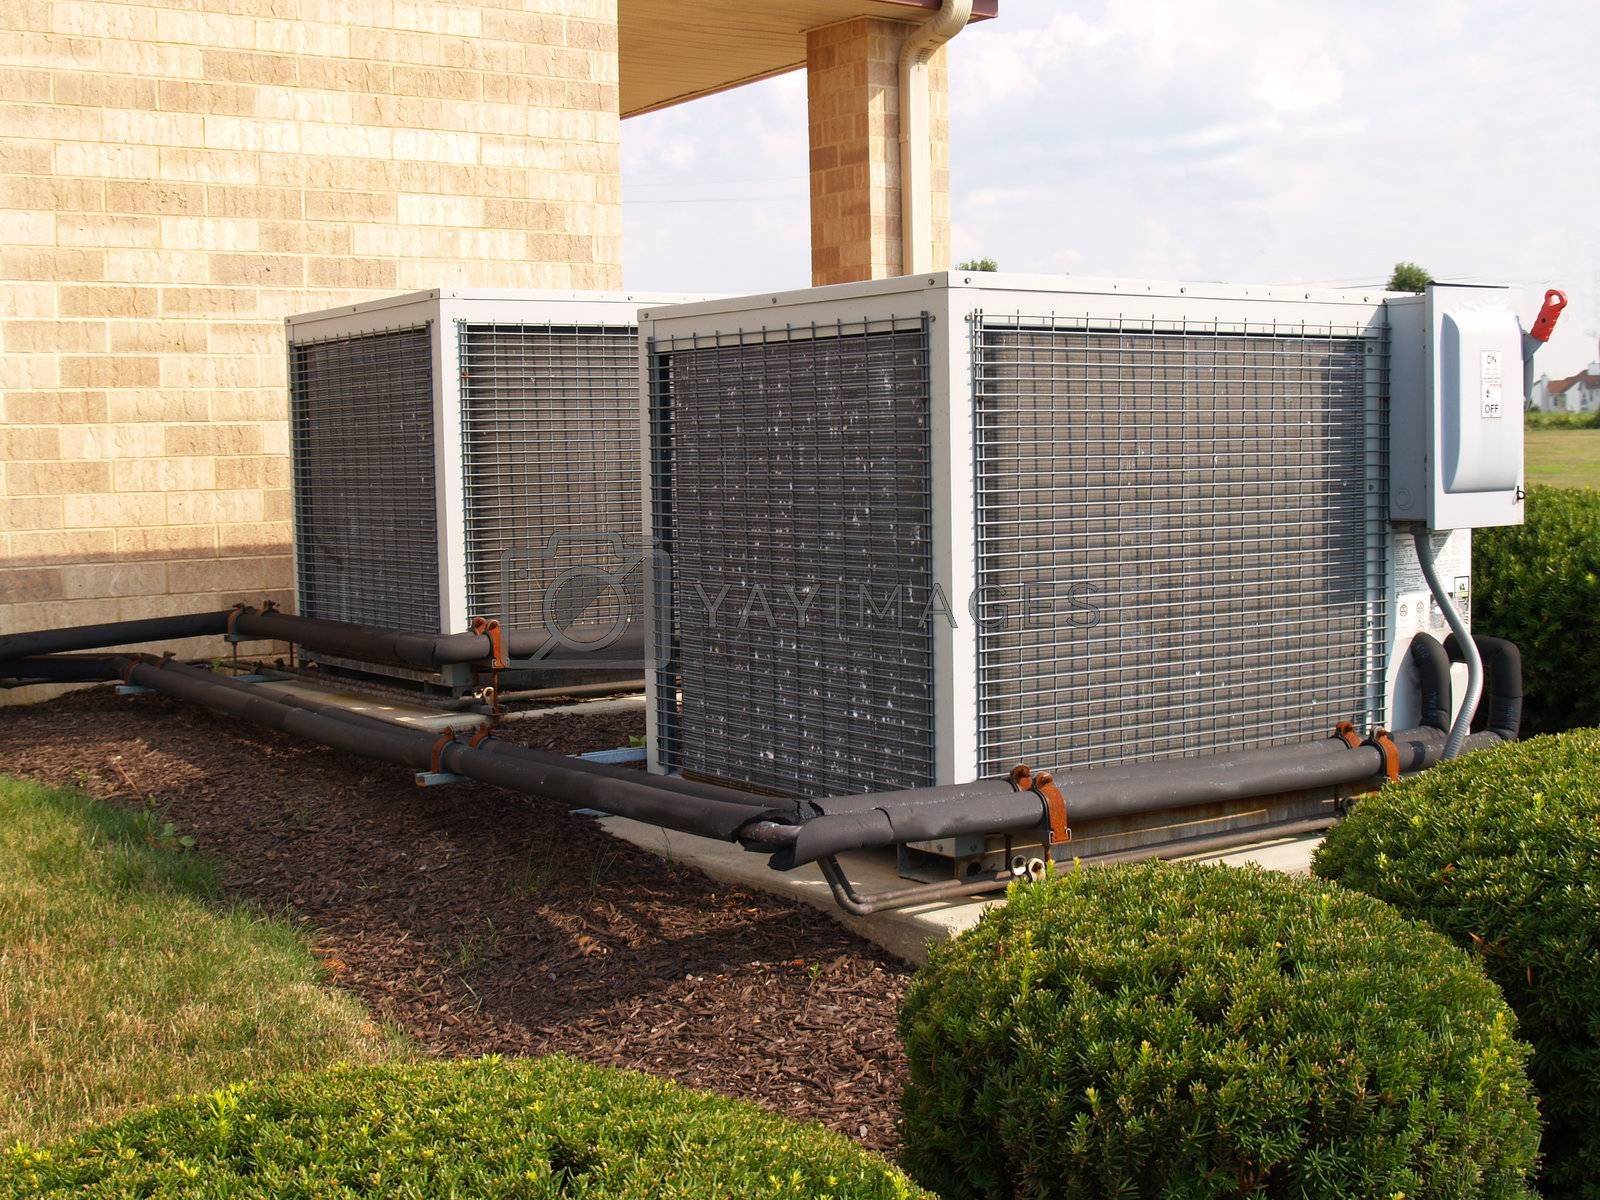 two heavy duty air conditioner units